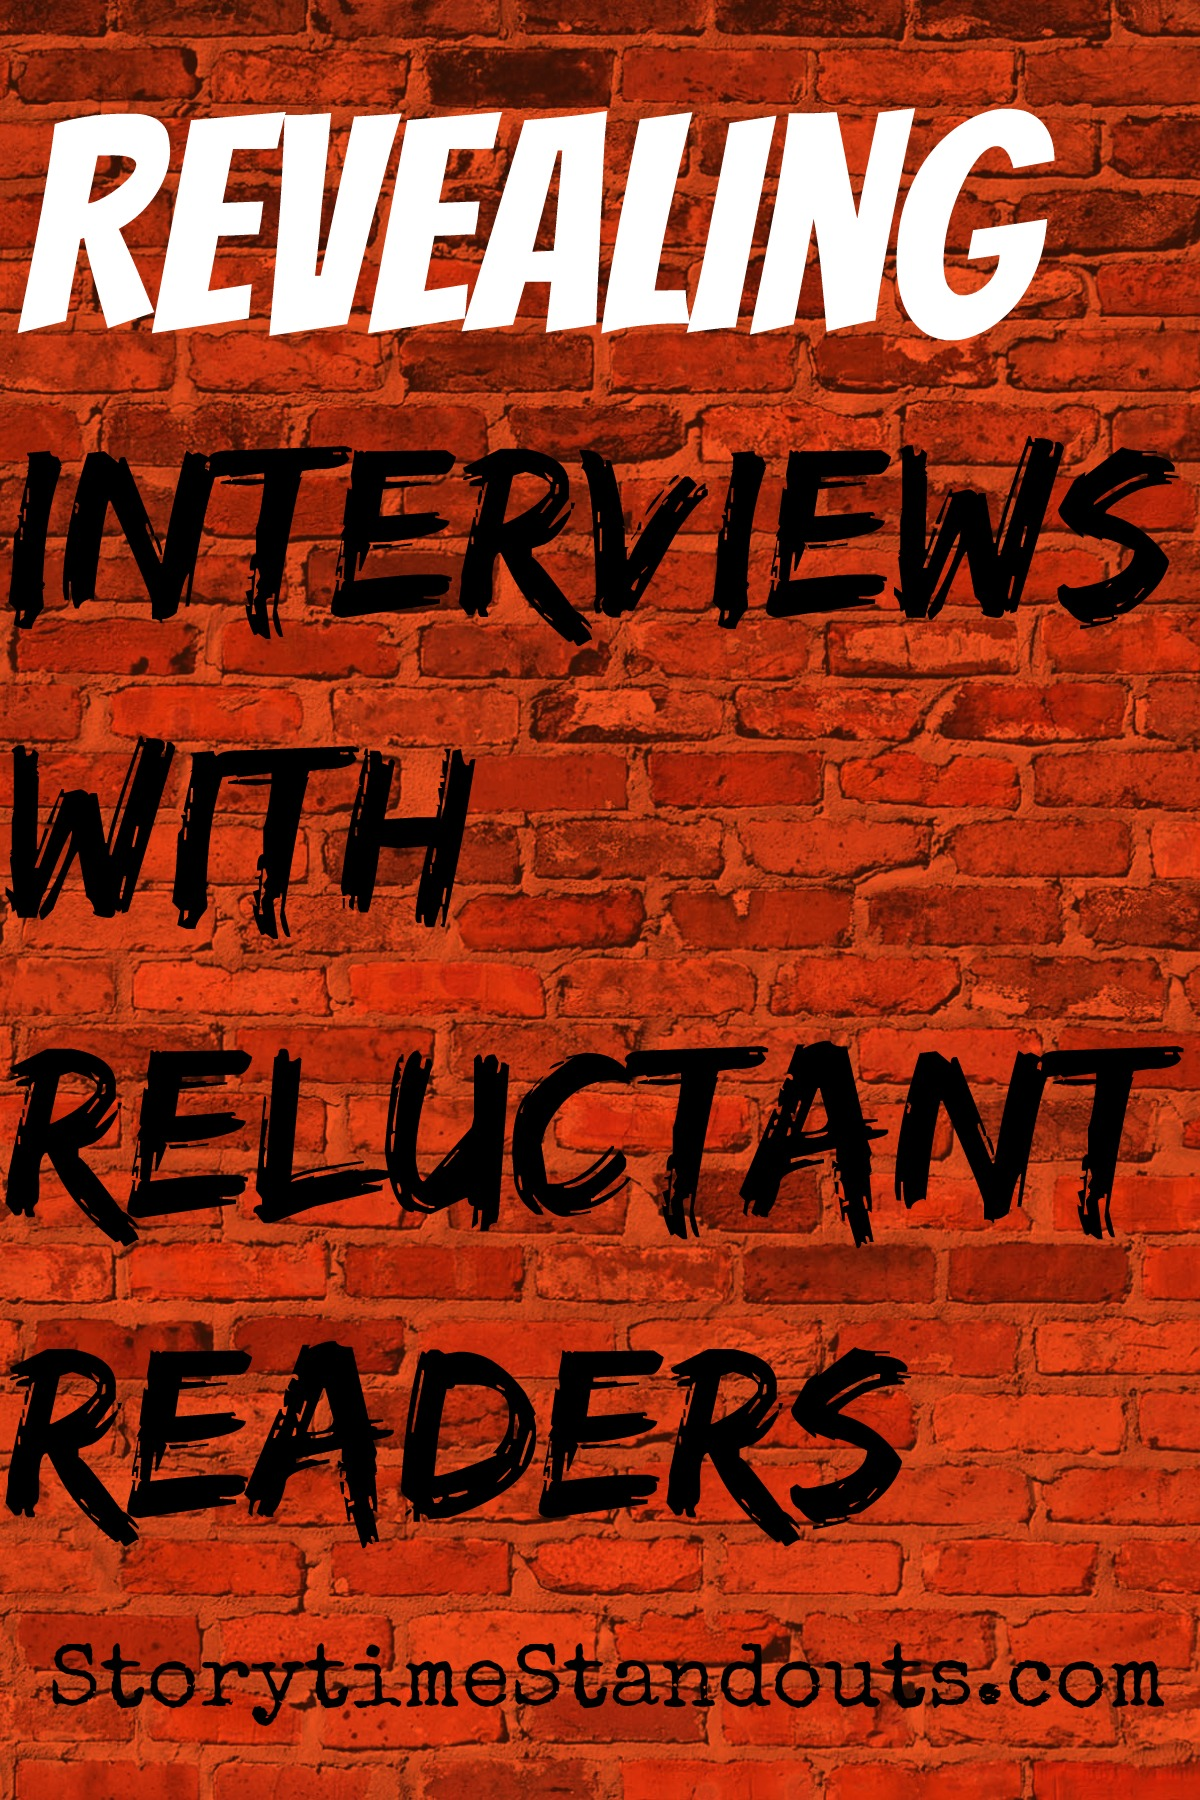 Storytime Standouts' Guest Contributor Conducts Interviews with Reluctant Readers